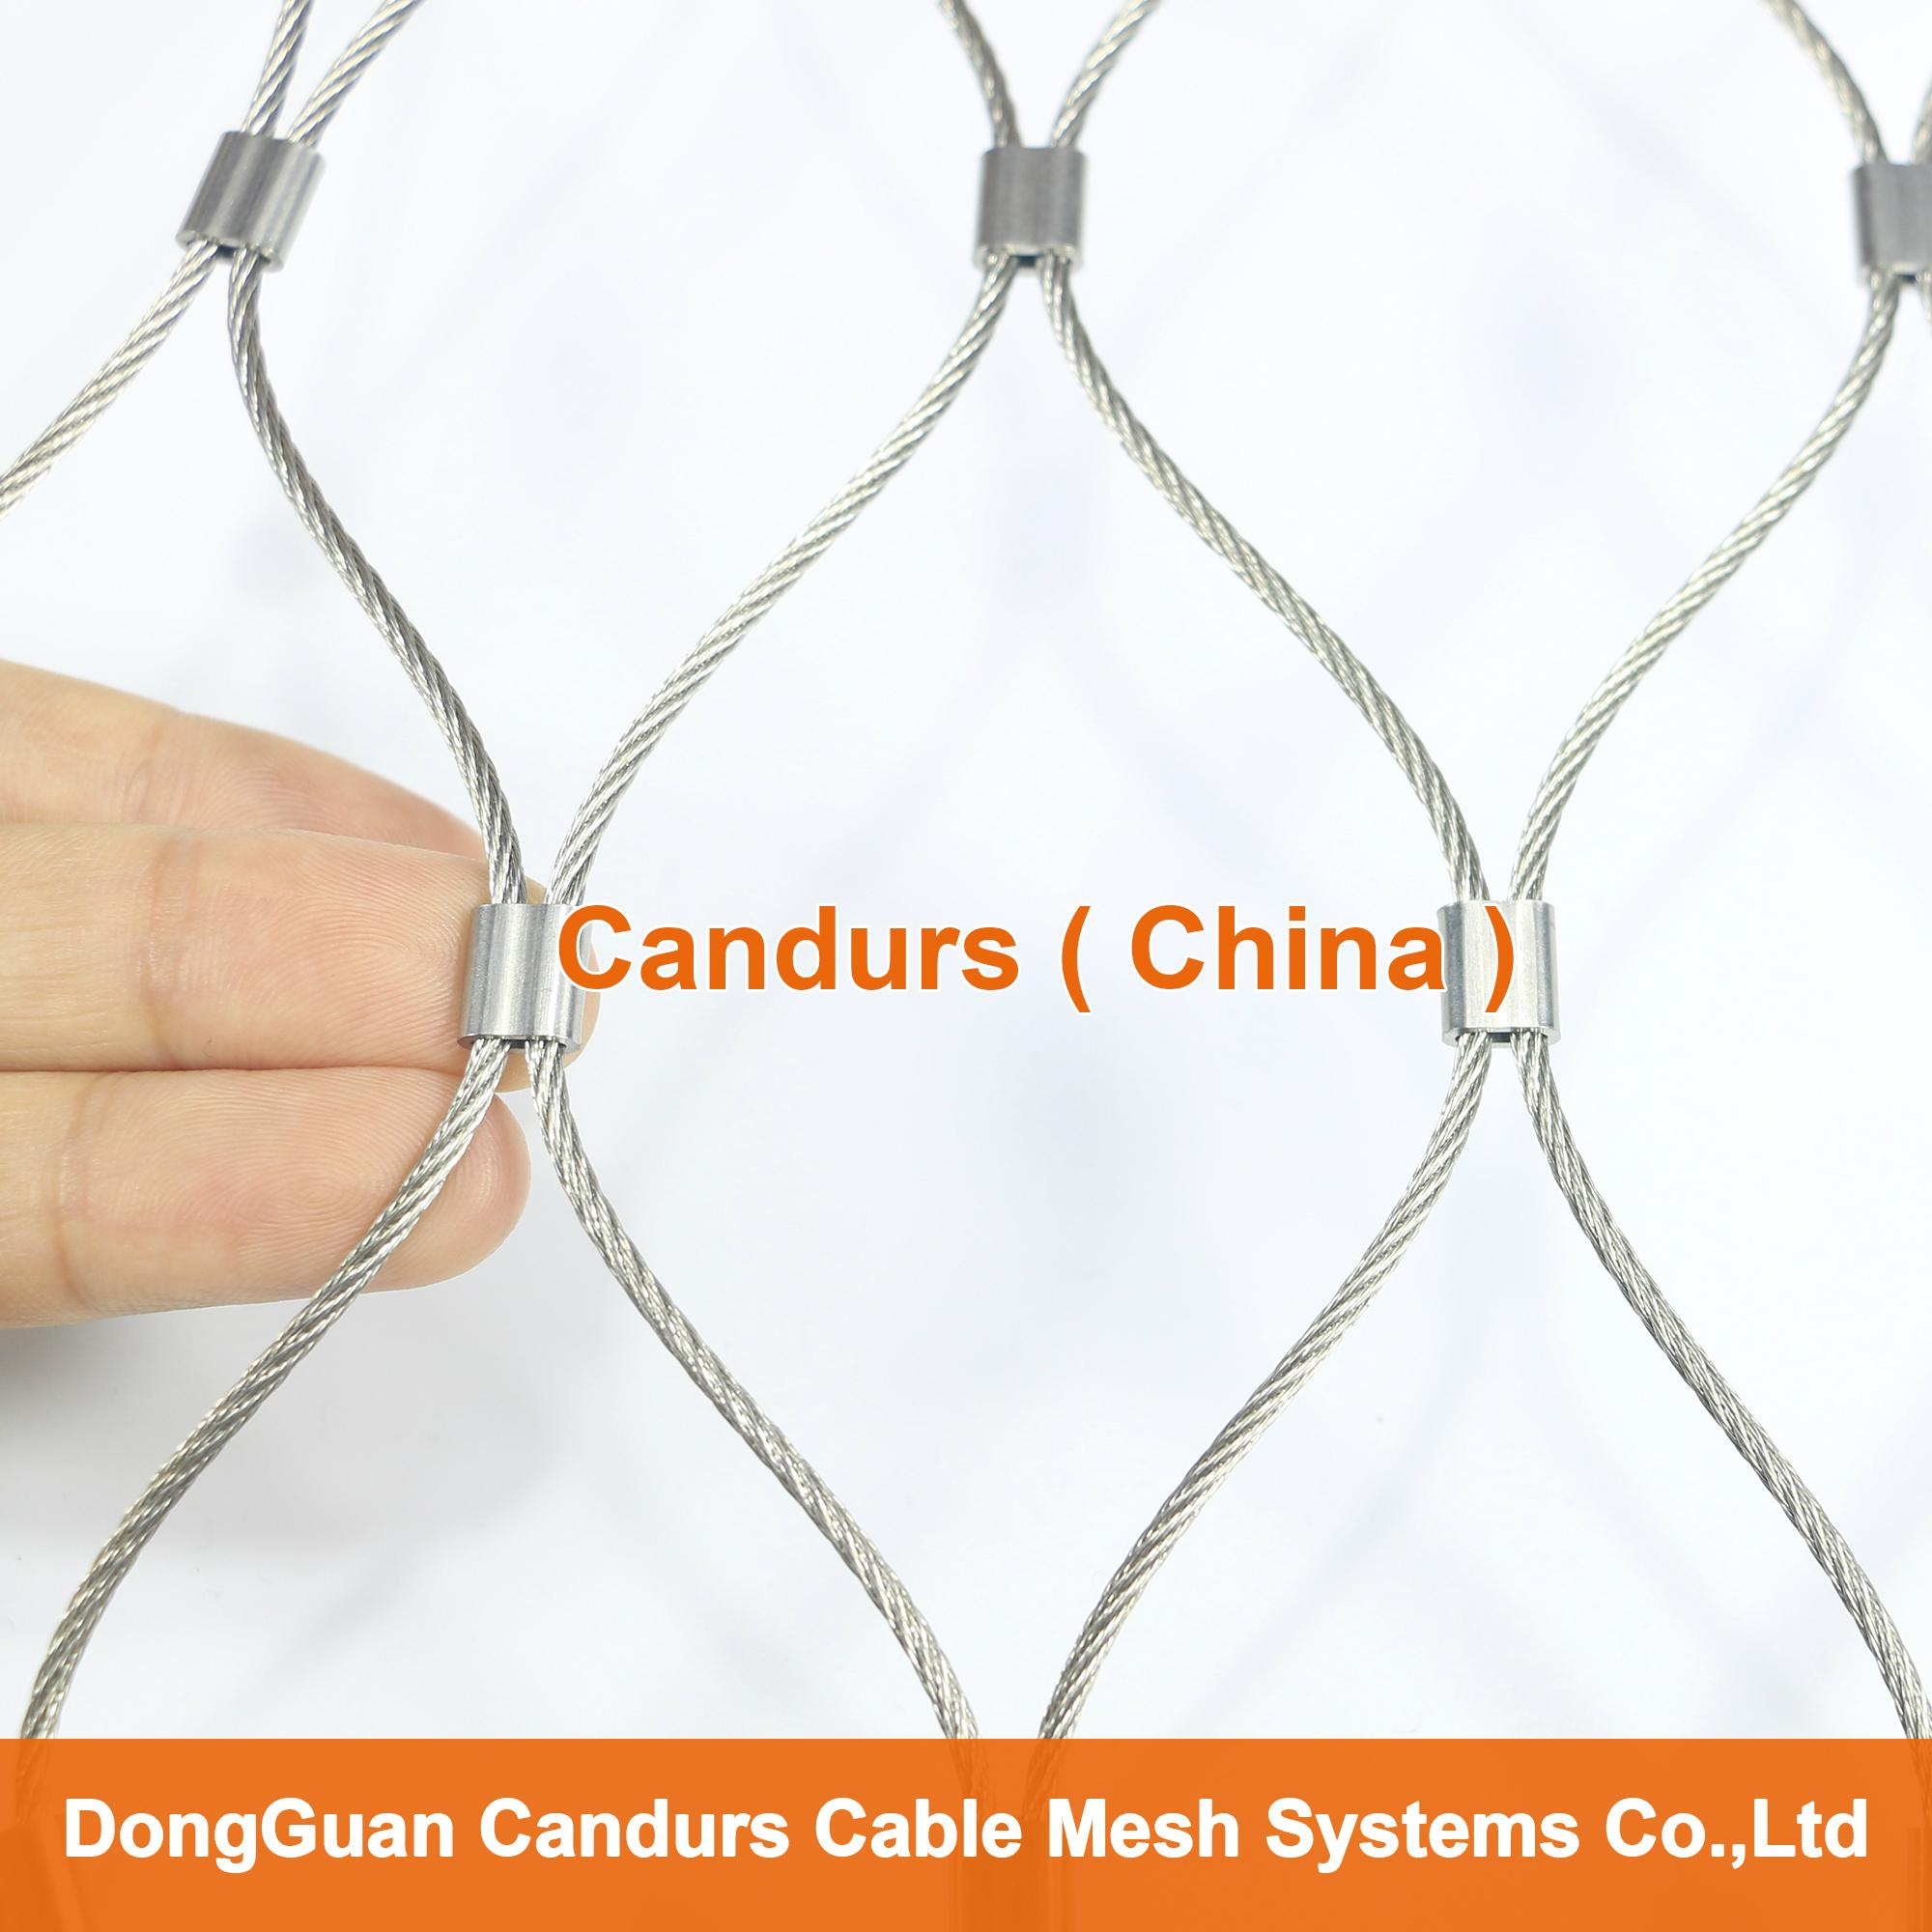 Stainless Steel Clip Cable Netting - DecorRope - Candurs (China ...